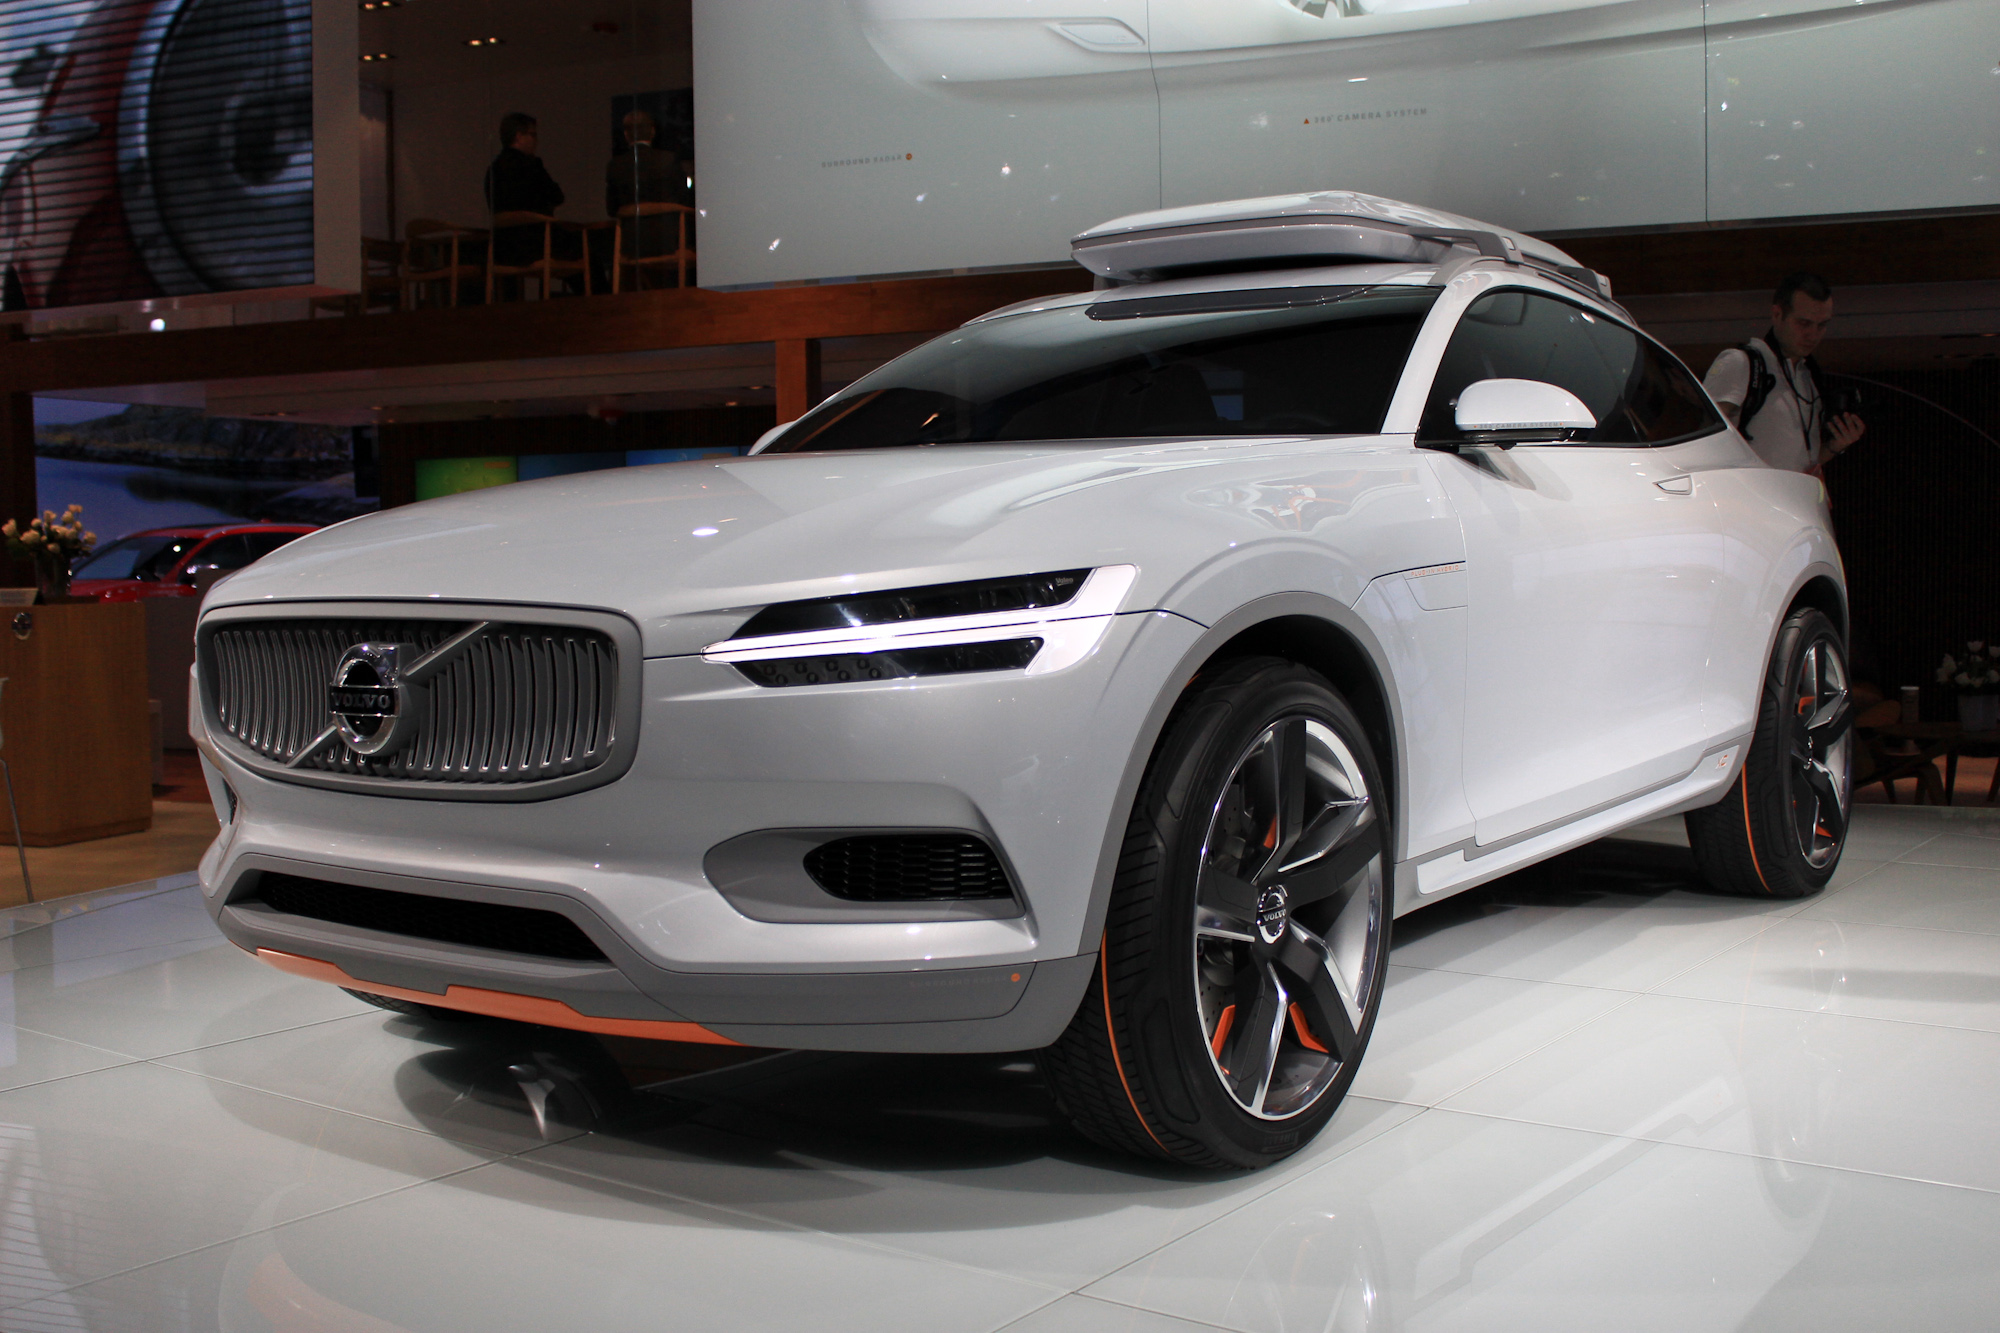 Volvo Concept XC Coupe Revealed Hints At Design Of 2016